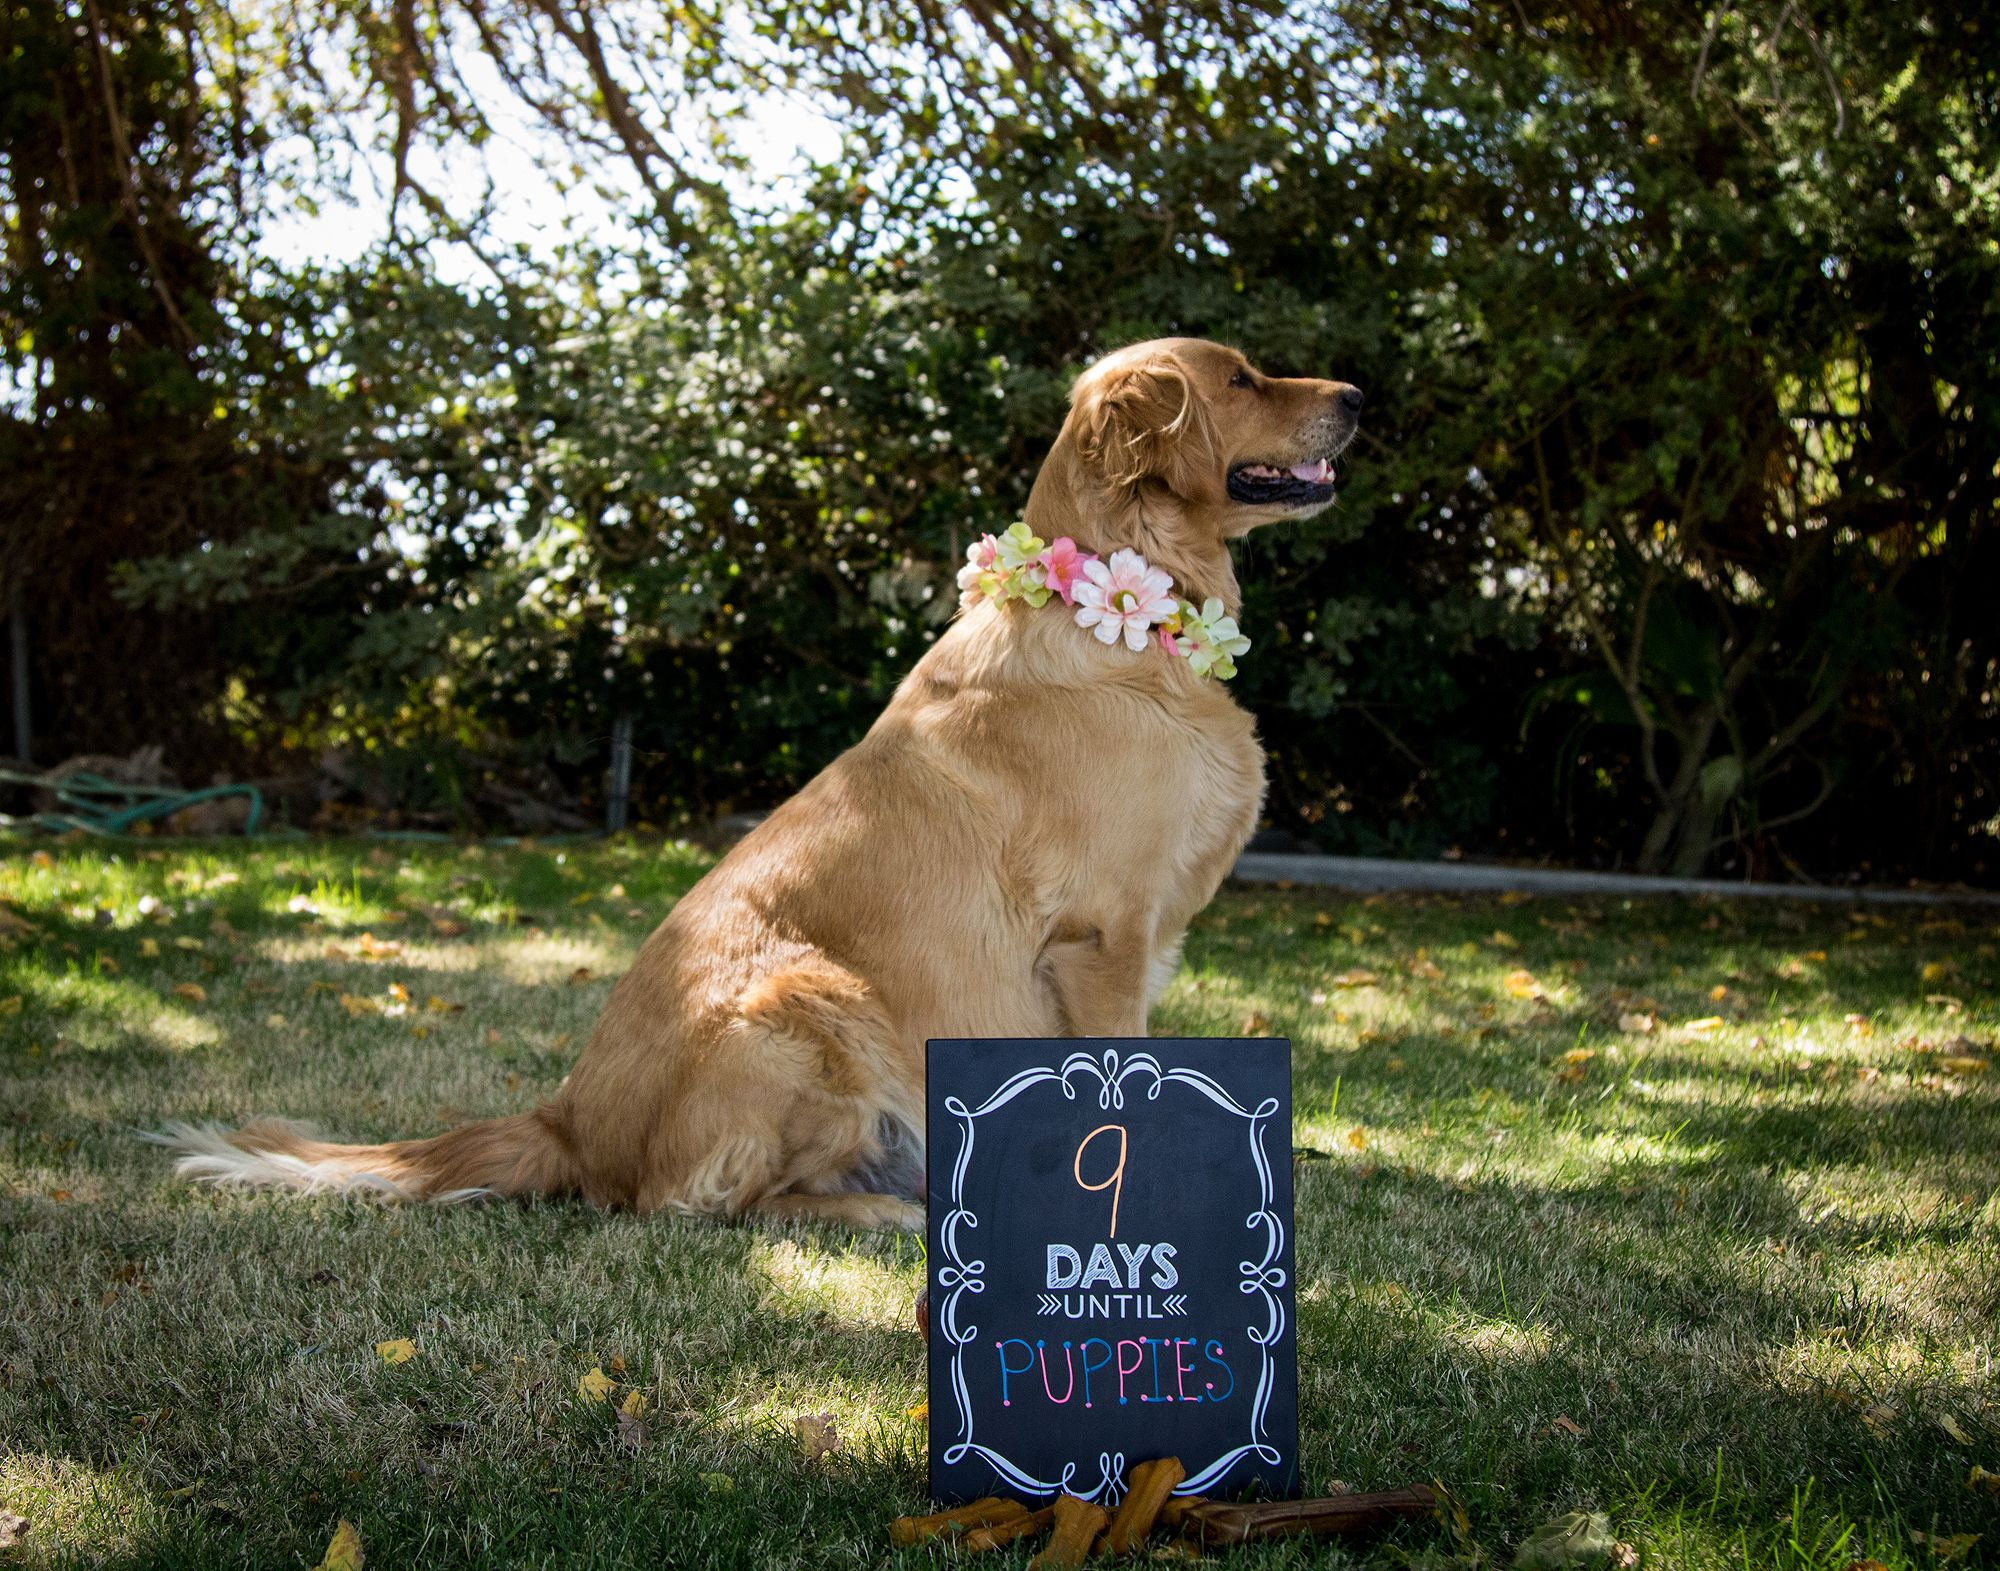 Oh Fur Baby Adorable Dog Parents Pose For Maternity Shoot